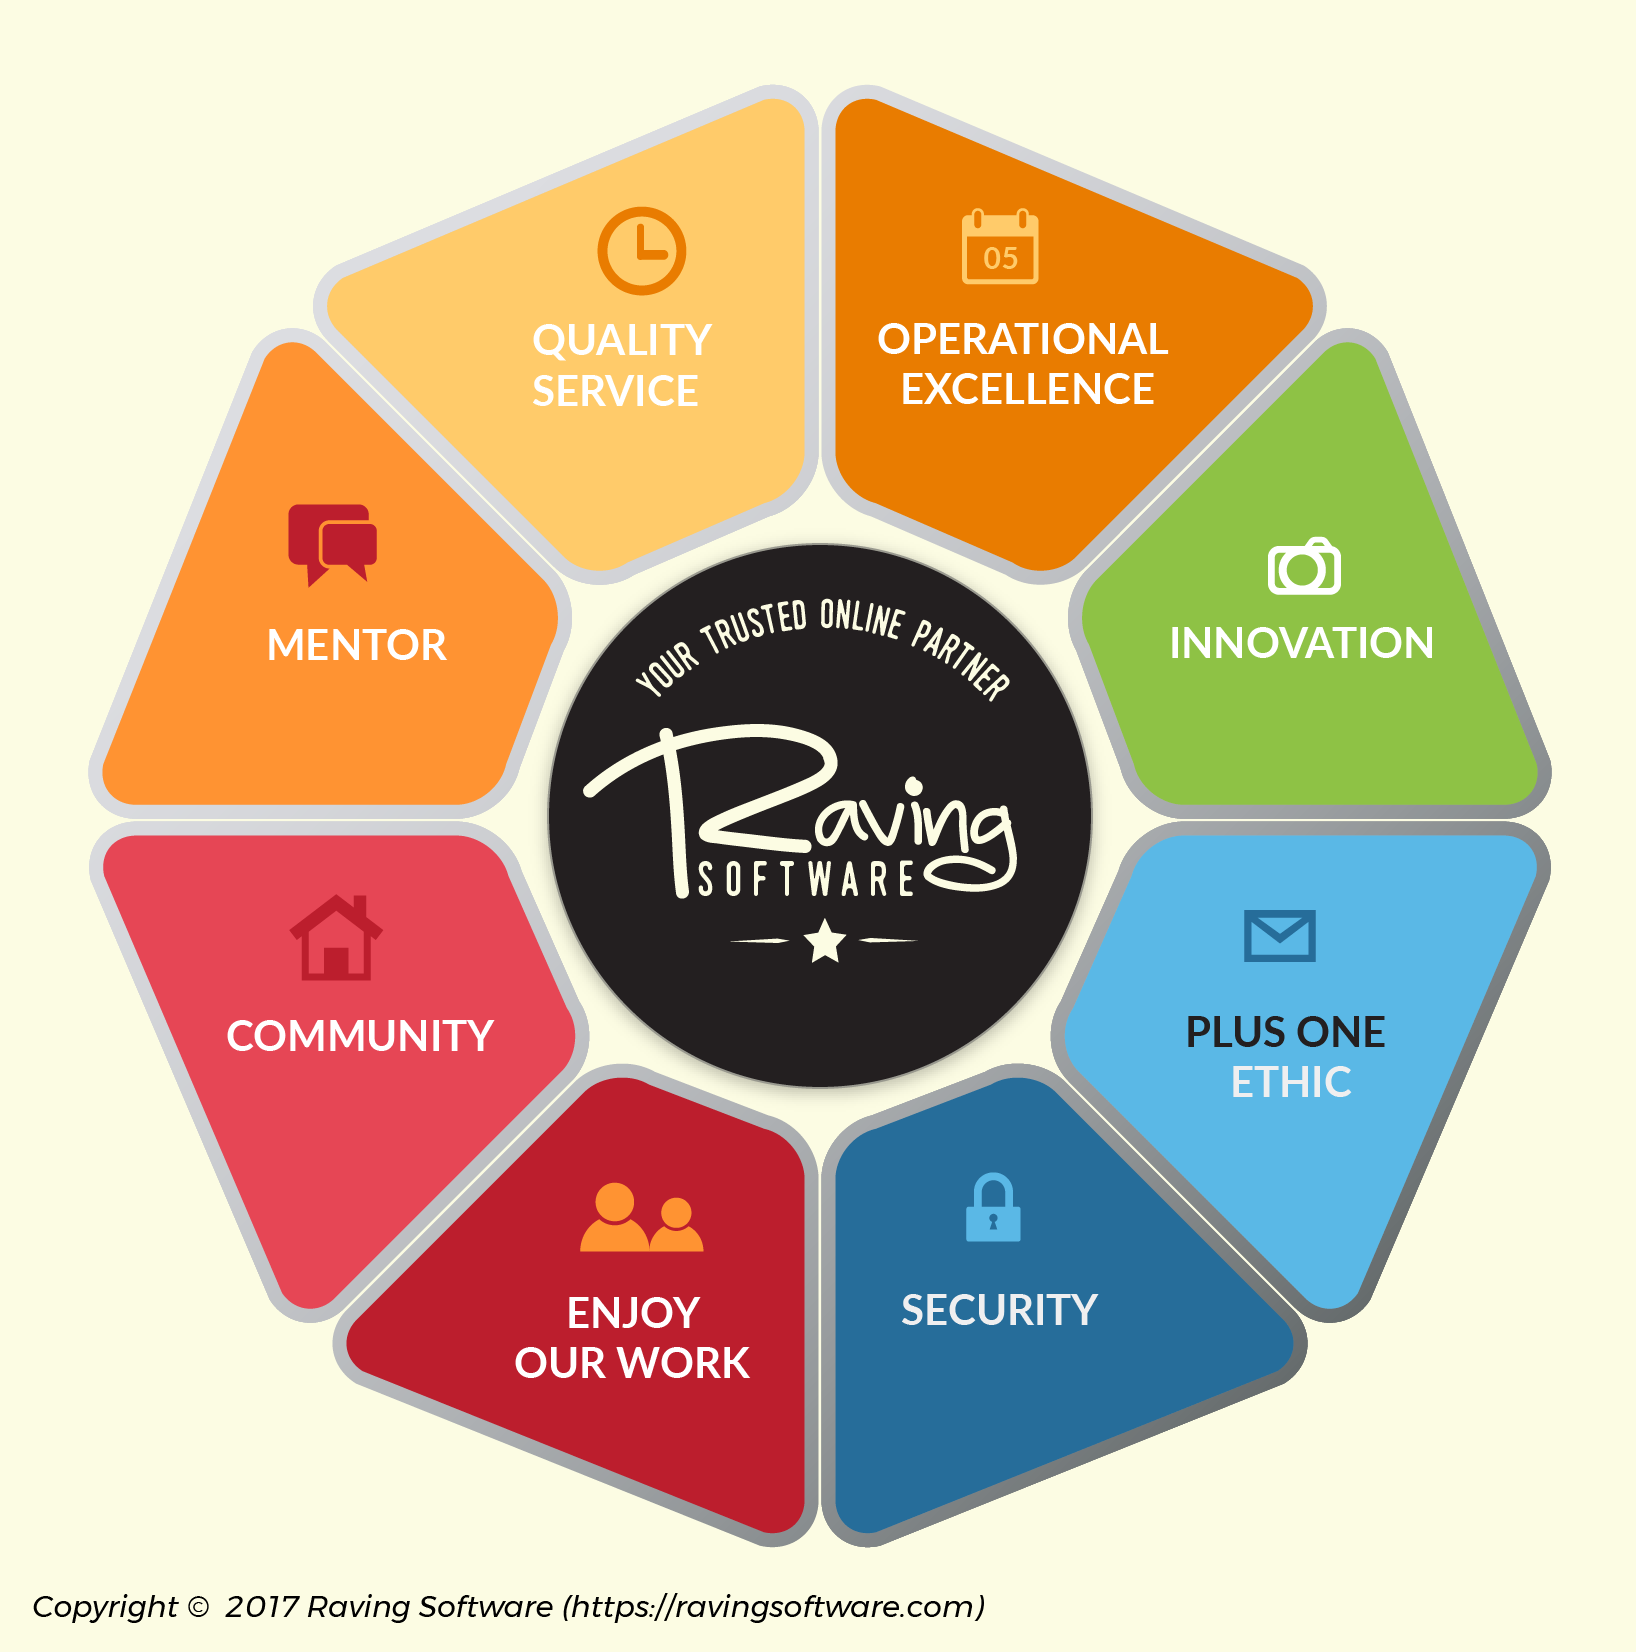 The Raving Software philosophy is made up of 8 components: quality service, operation excellence, innovation, plus one ethic, security, enjoy our work, community, and being mentors.